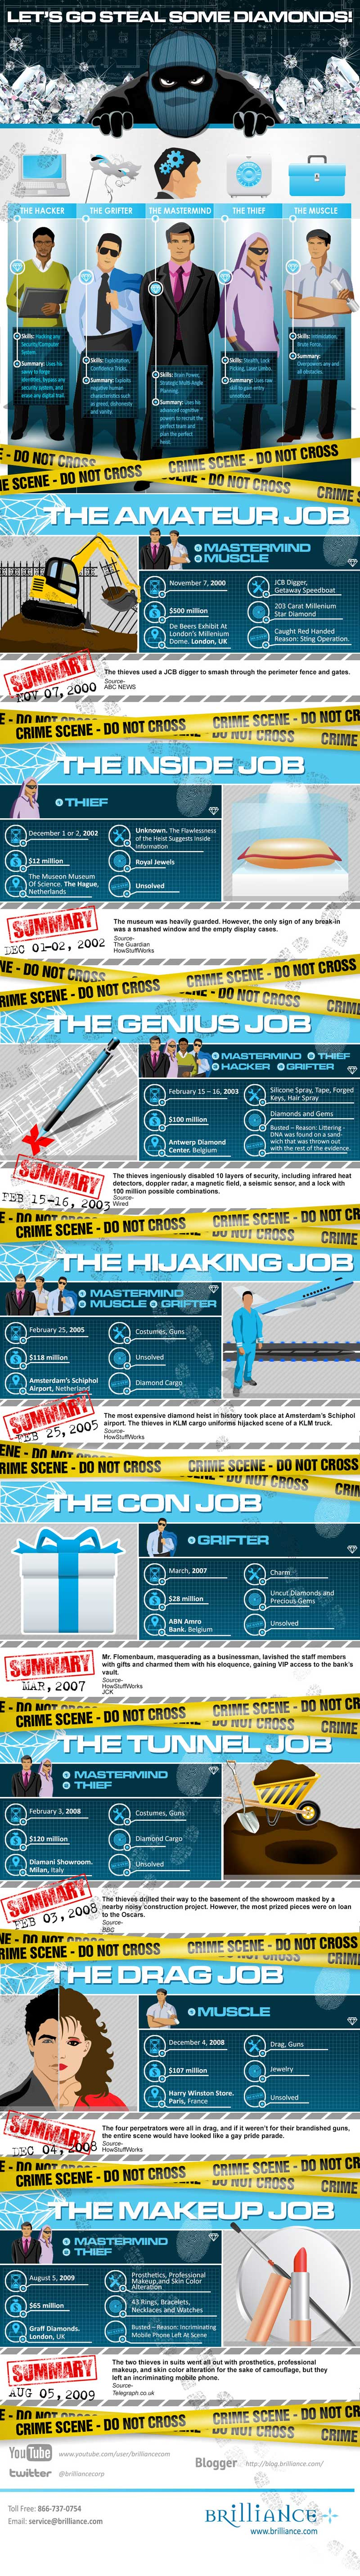 Diamond Heists-Infographic